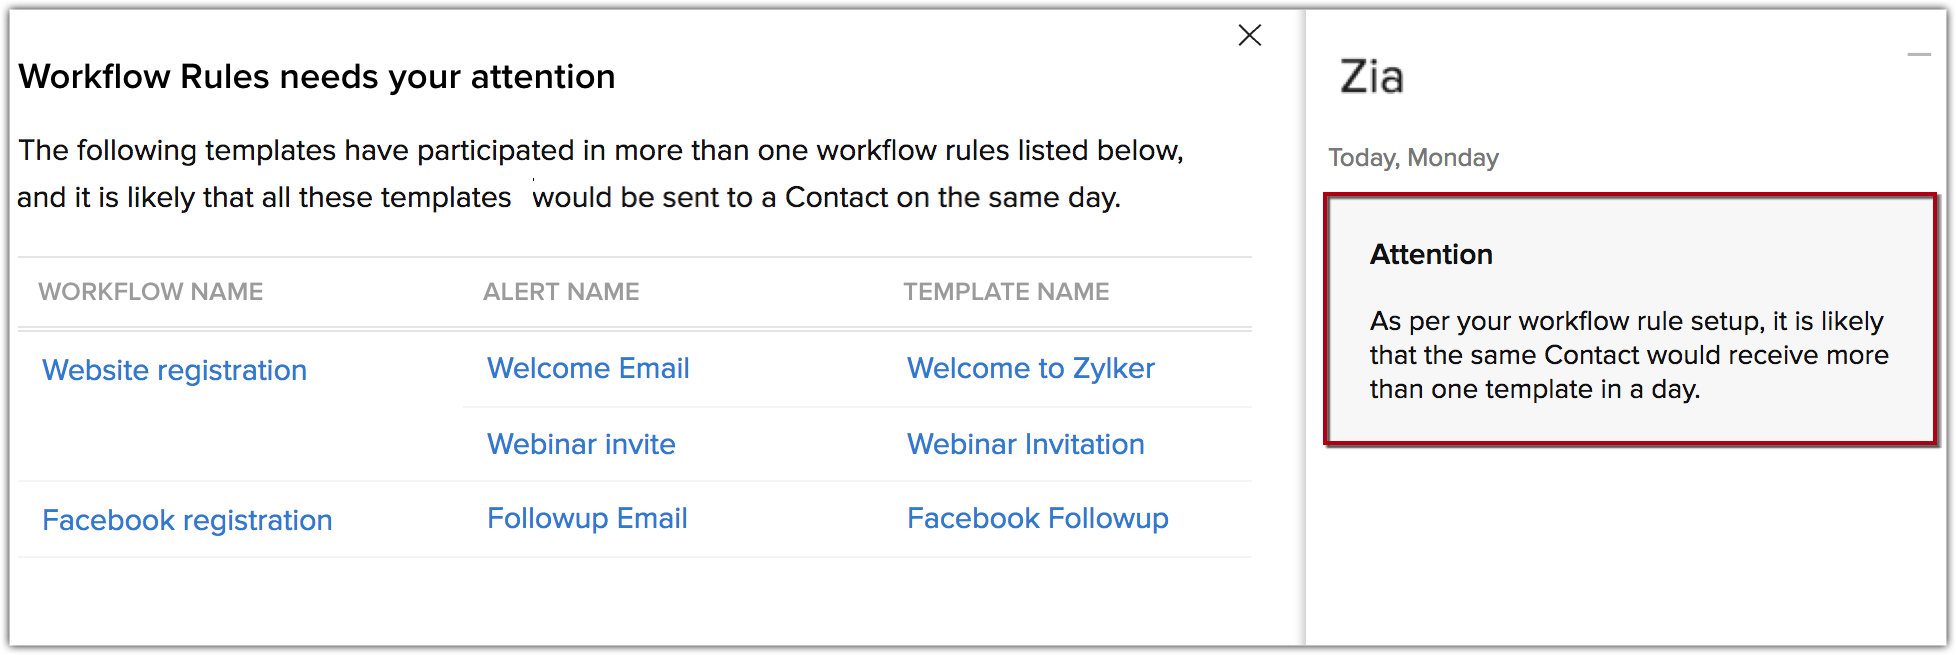 Zia for Workflow Rules | AI Sales Assistant - Zoho CRM